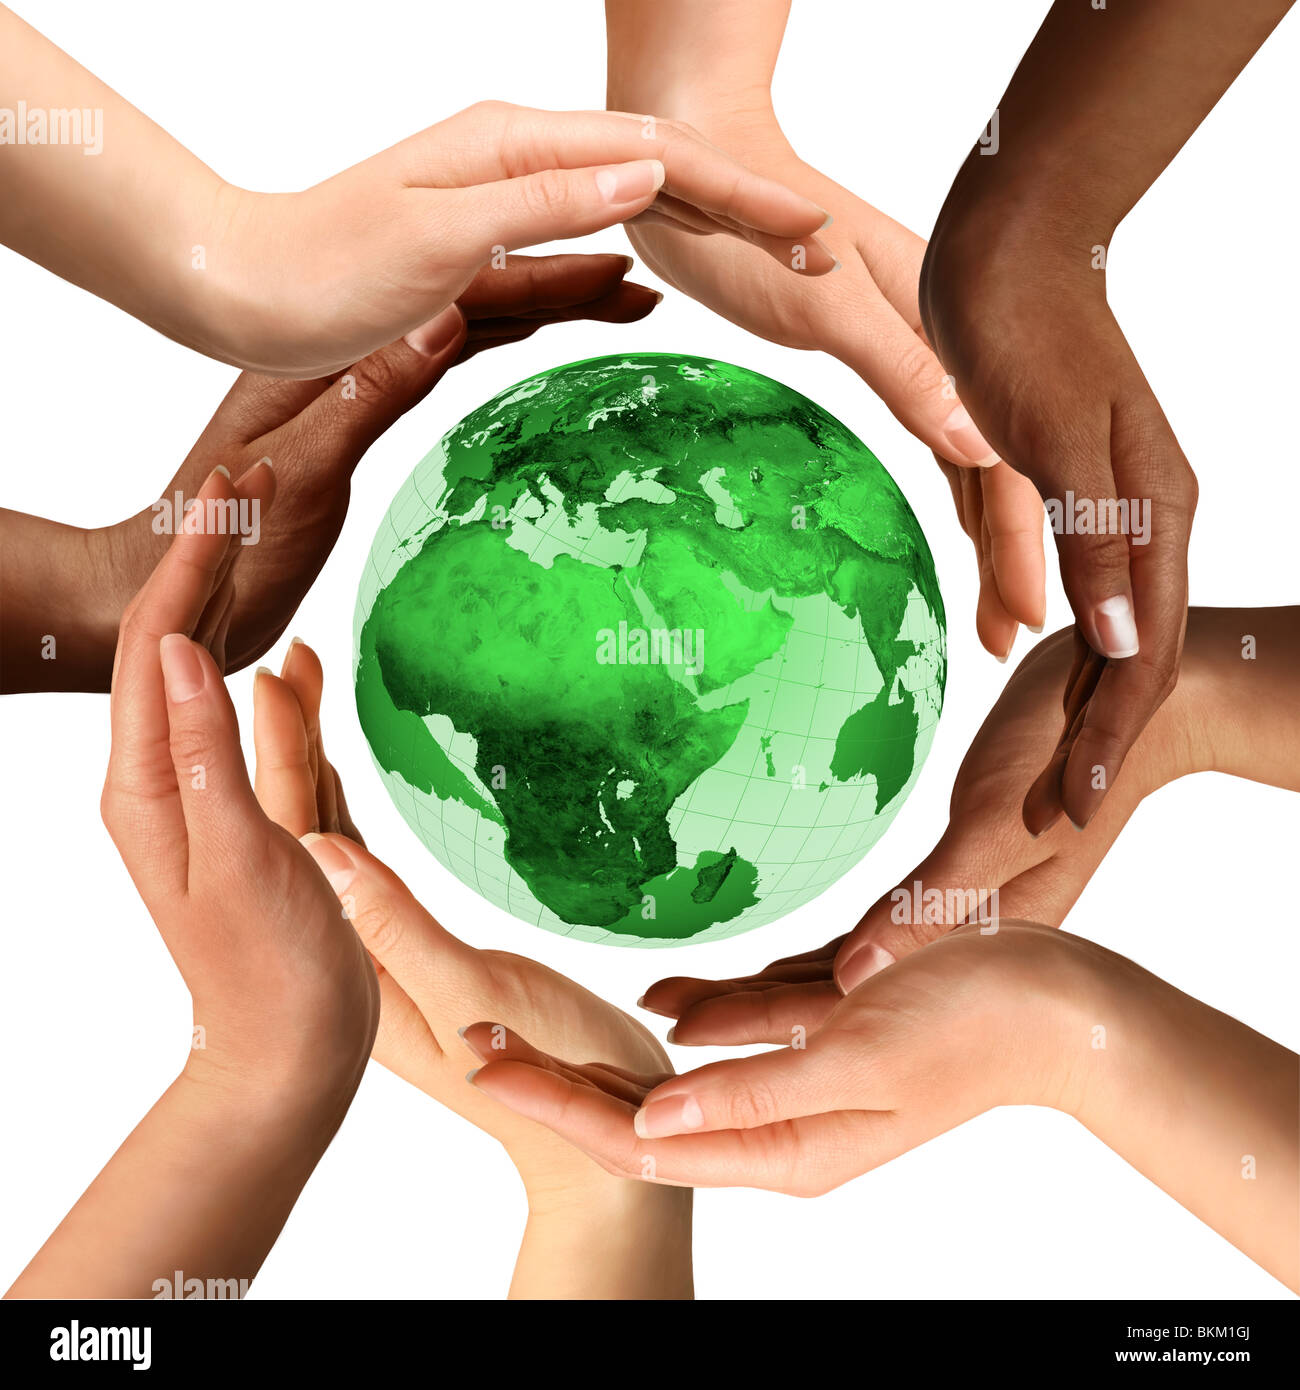 Conceptual symbol of a green Earth globe with multiracial human hands around it. Isolated on white background. - Stock Image